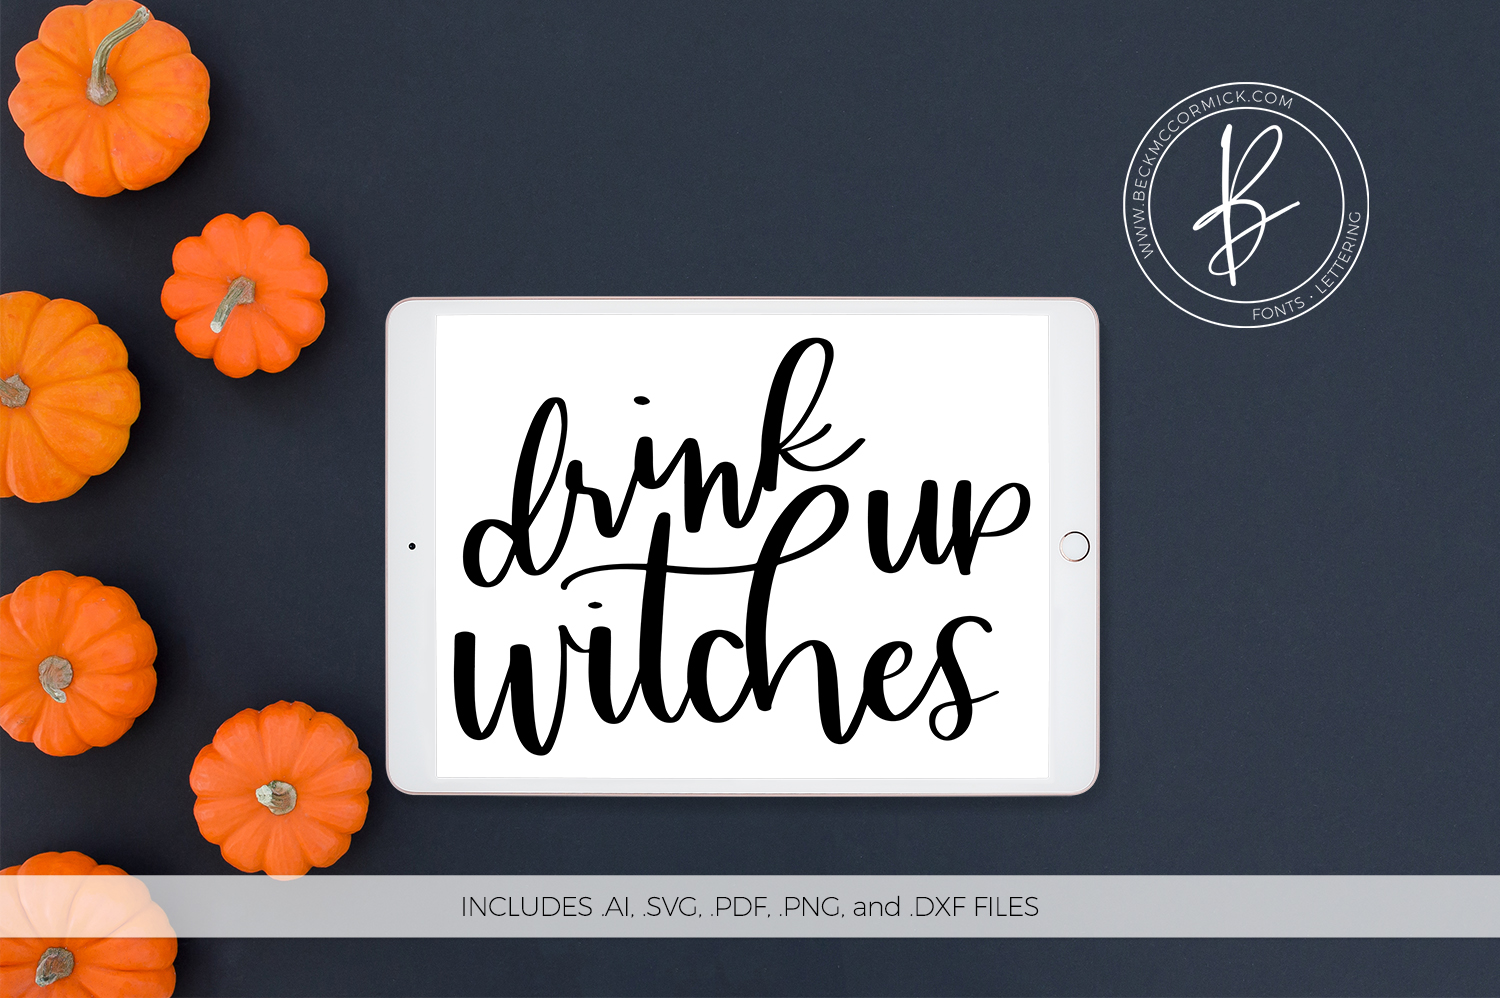 Download Free Drink Up Witches Graphic By Beckmccormick Creative Fabrica for Cricut Explore, Silhouette and other cutting machines.